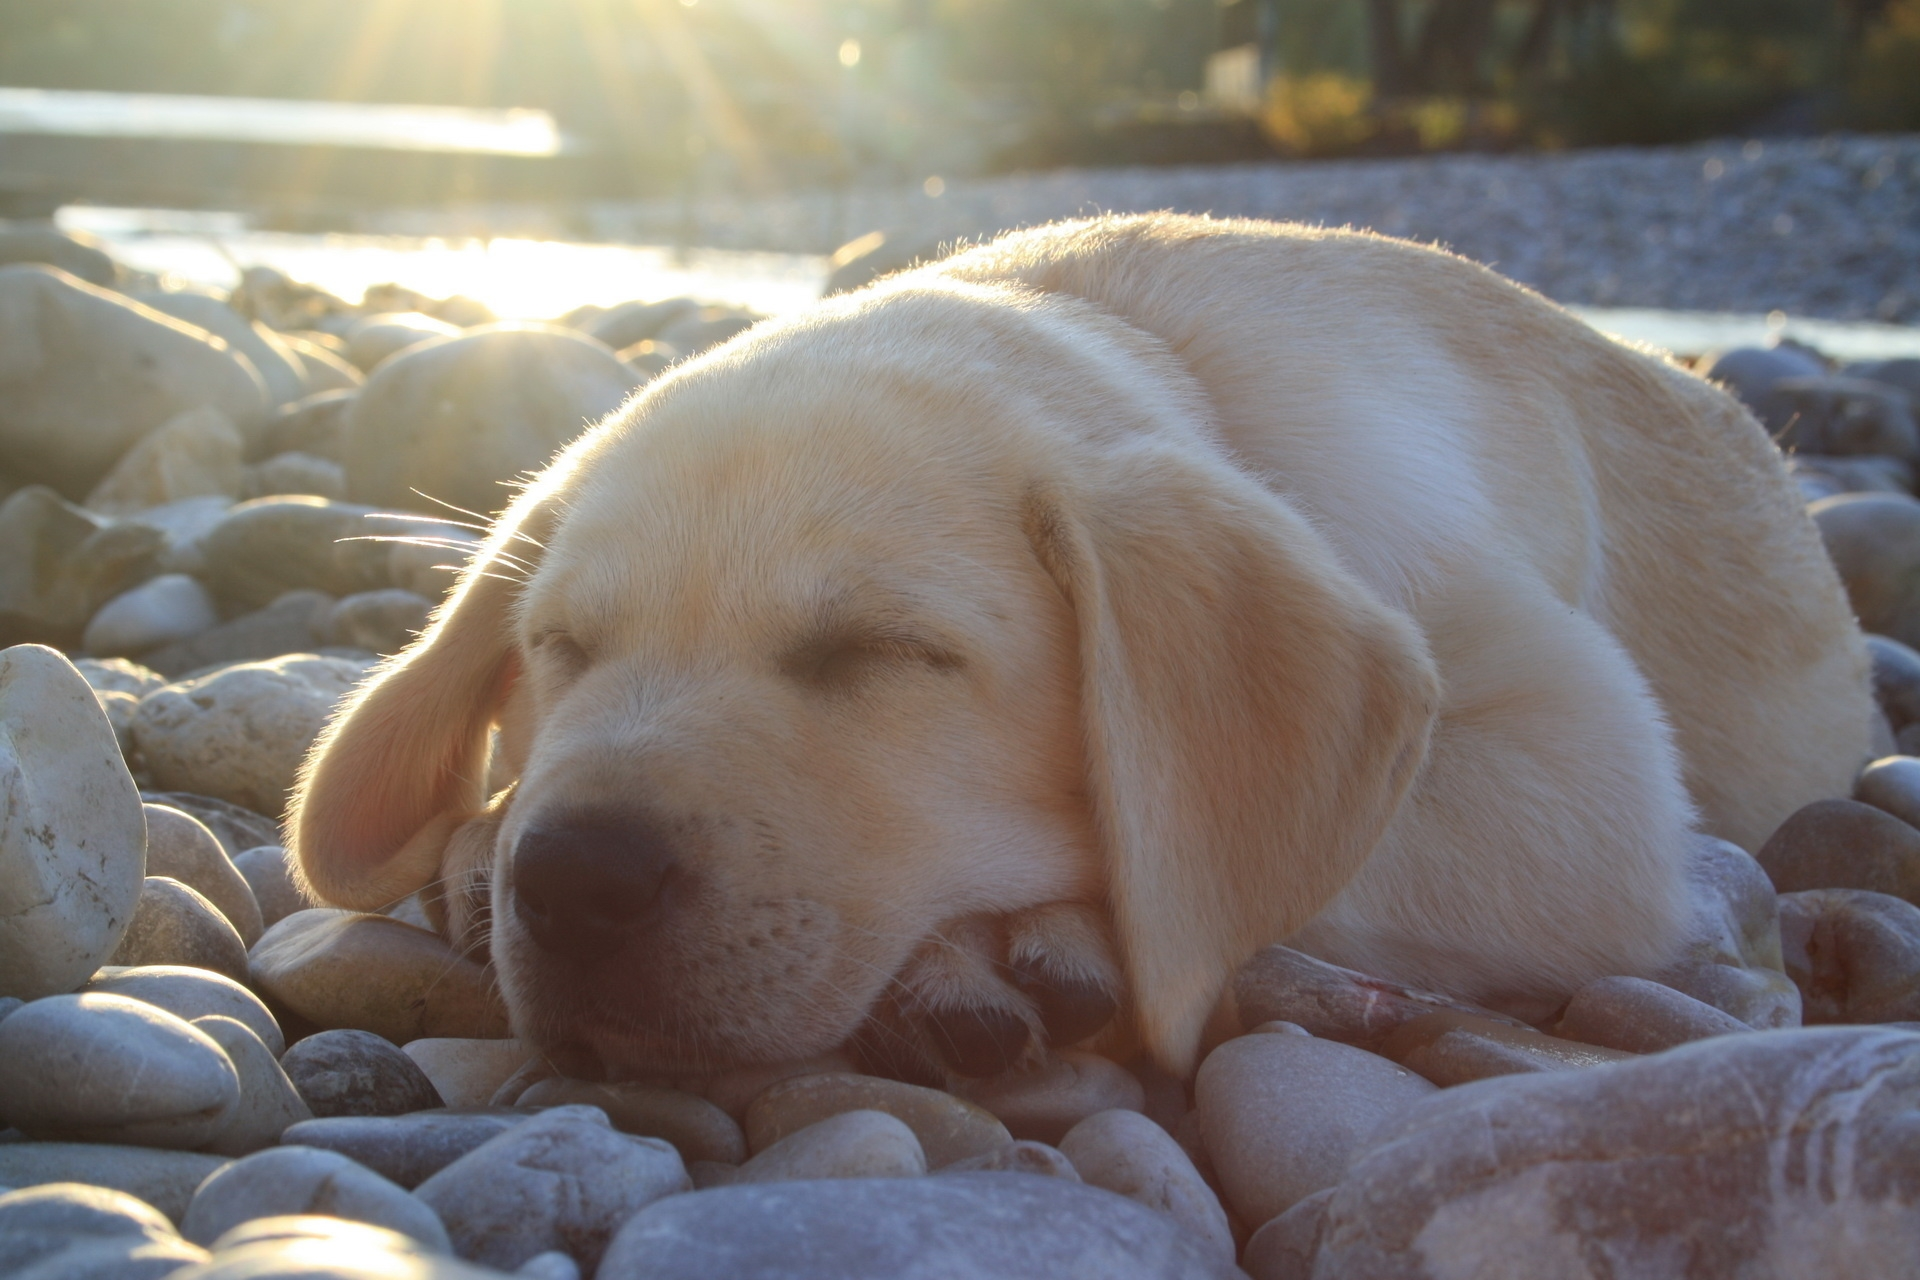 145319 download wallpaper Animals, Dog, Muzzle, Sleep, Dream, Labrador, Nice, Sweetheart screensavers and pictures for free